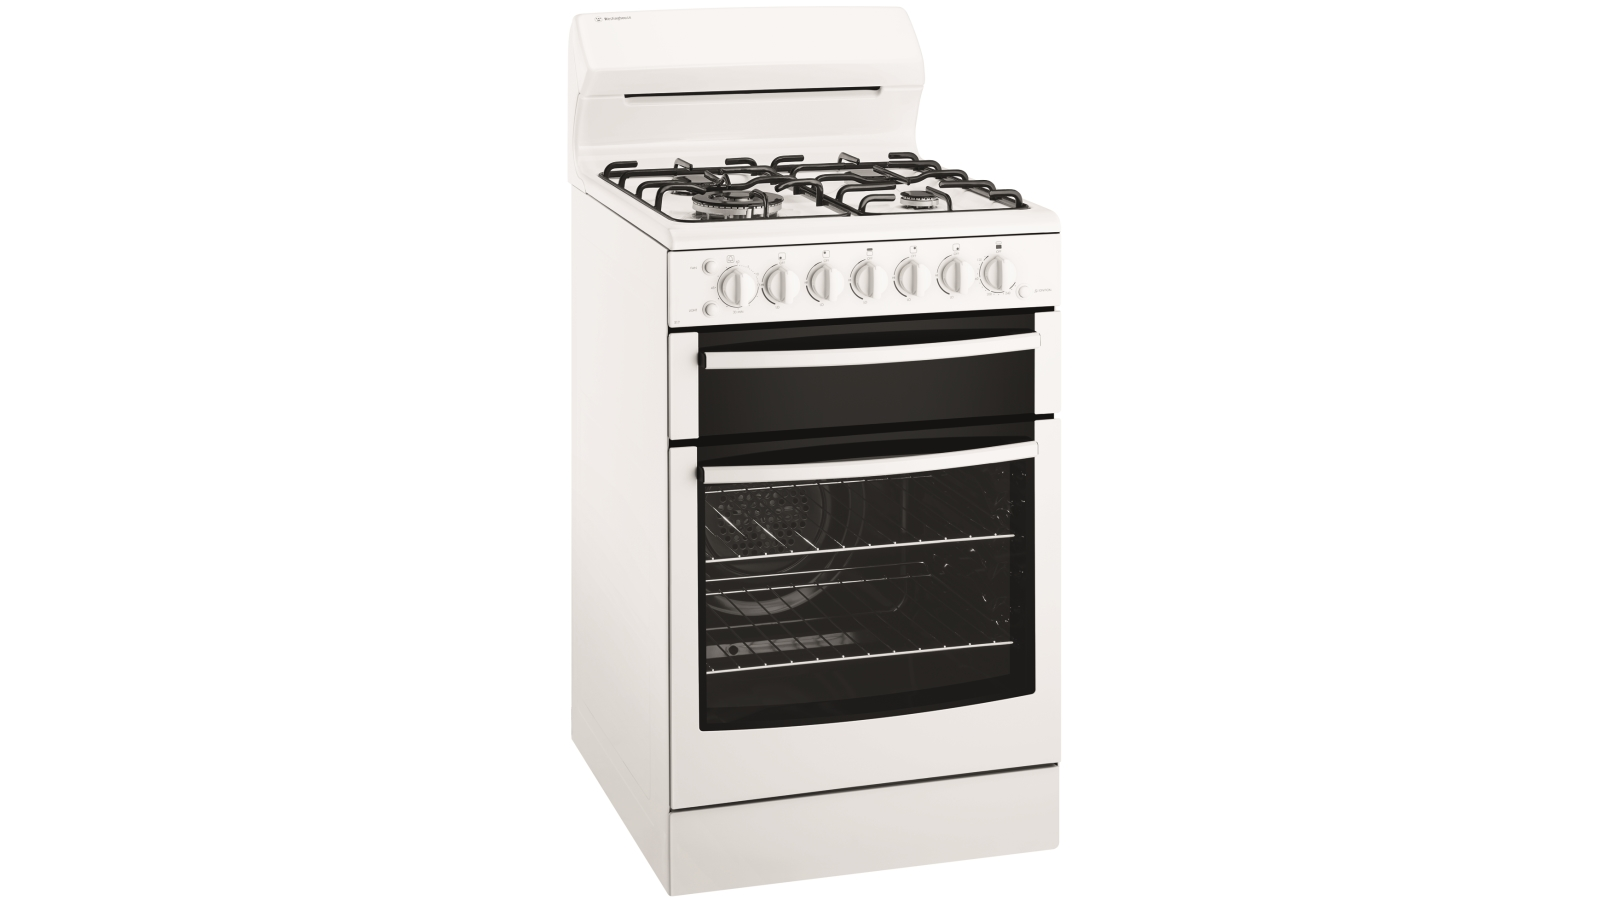 Westinghouse WLG517WB Oven